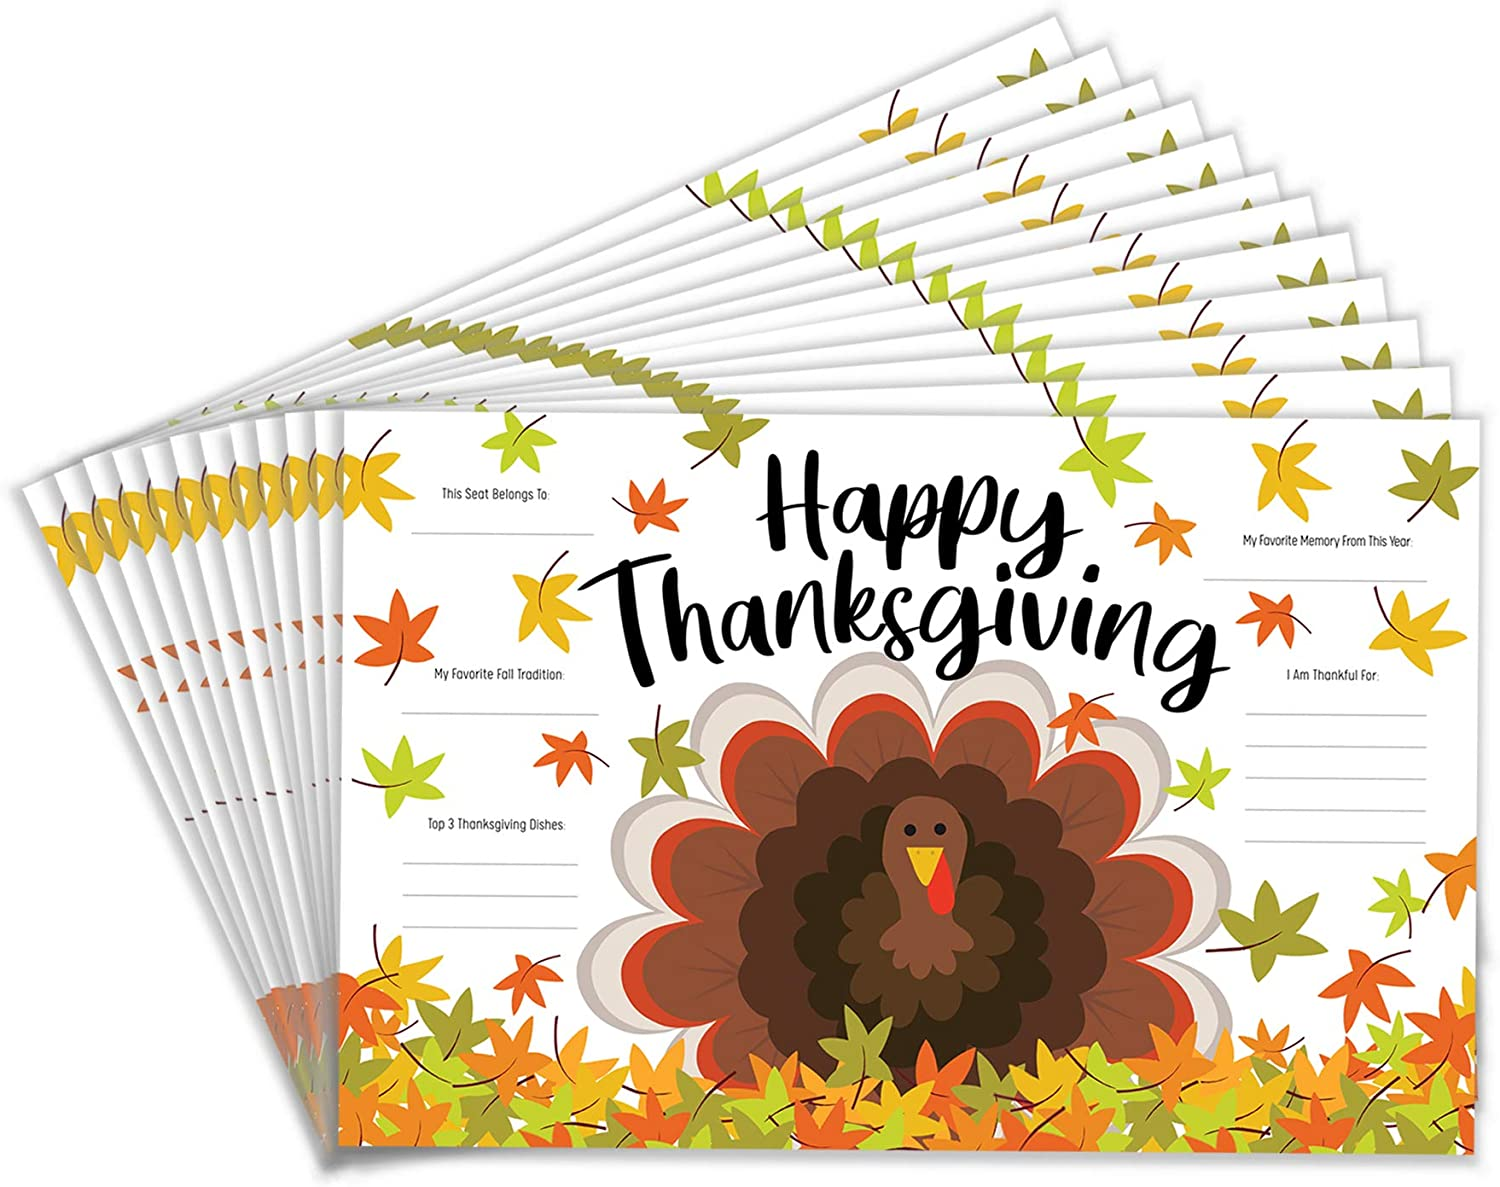 Tiny Expressions - Thanksgiving Placemats for Families (Pack of 12 Turkey Placemats) | Color Activity Paper Table Mats for Kids to Write Thankful List | Disposable Bulk Décor Bundle Set